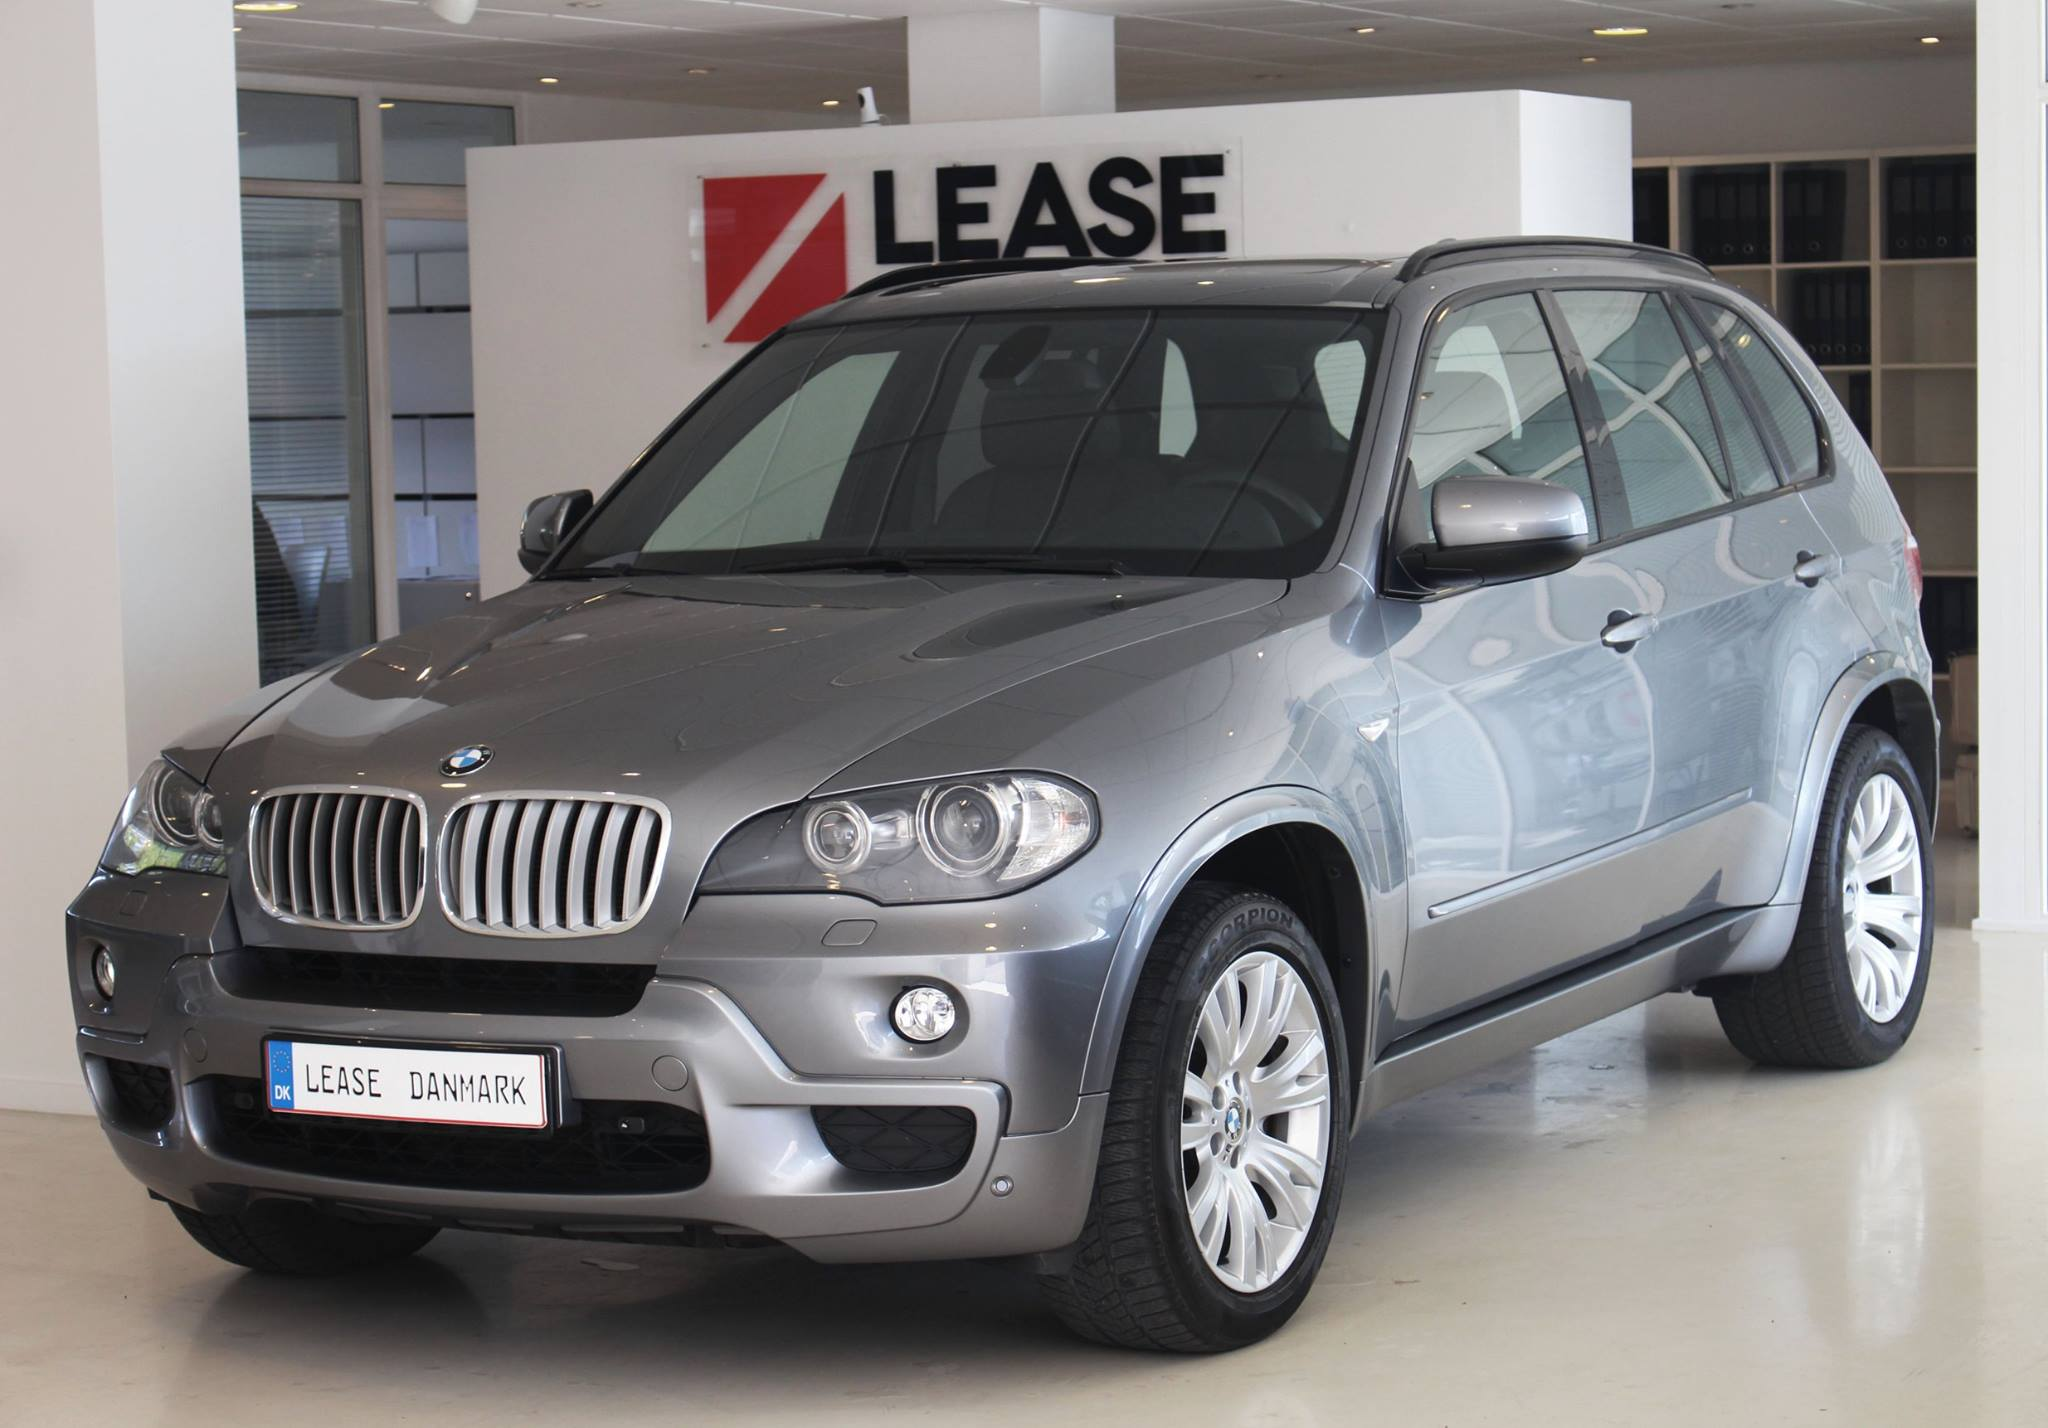 bmw x5 xdrive lease danmark. Black Bedroom Furniture Sets. Home Design Ideas